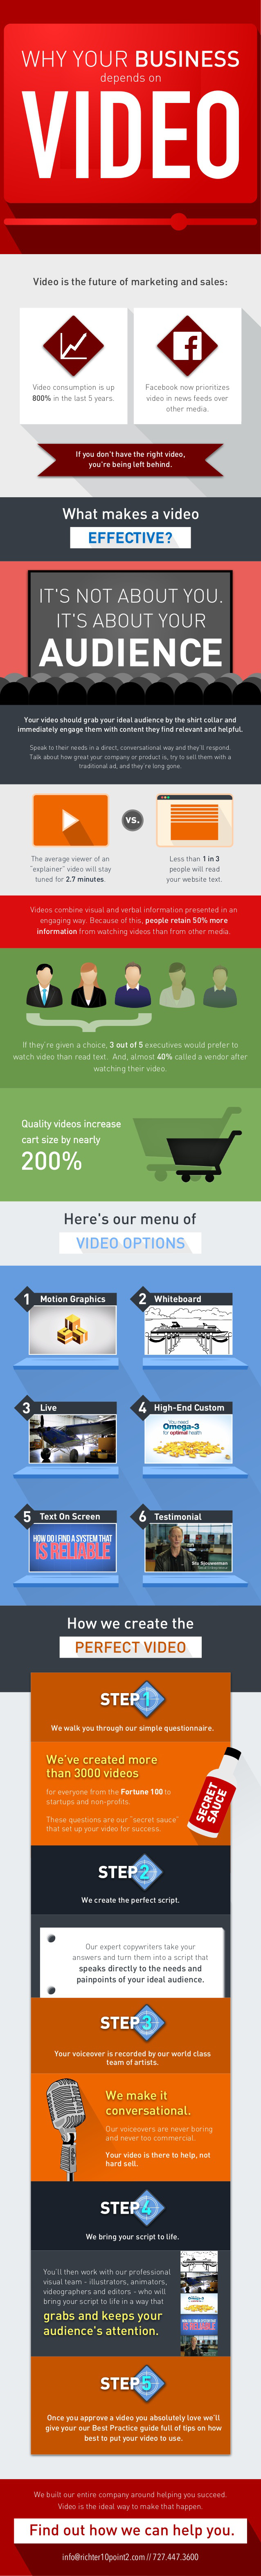 Why your business depend on video #INFOGRAPHIC #MARKETING